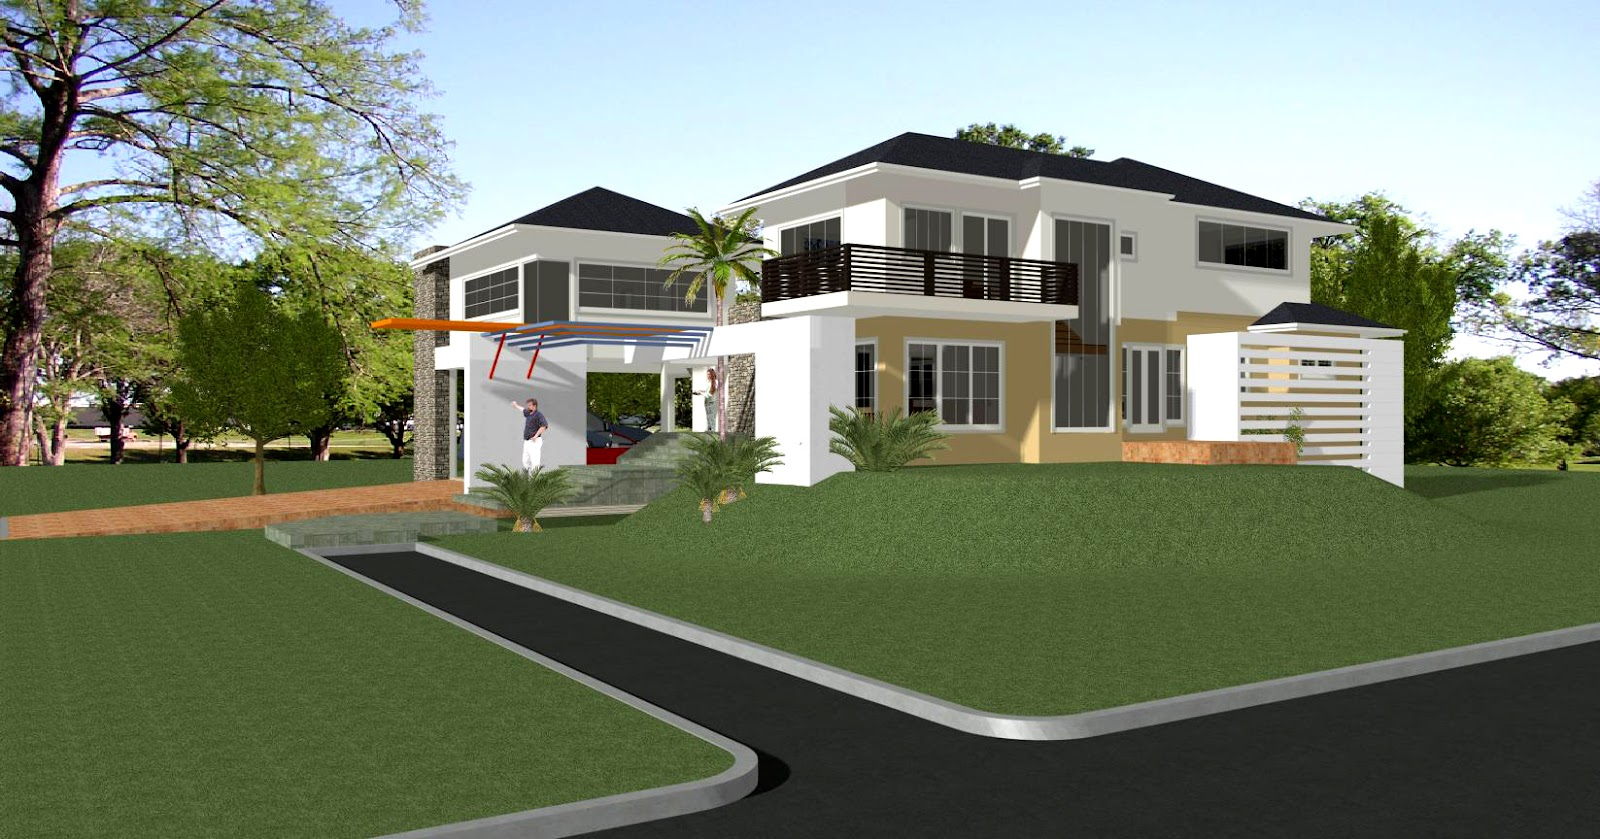 House designs in the philippines in iloilo by erecre group for Estate home plans designs